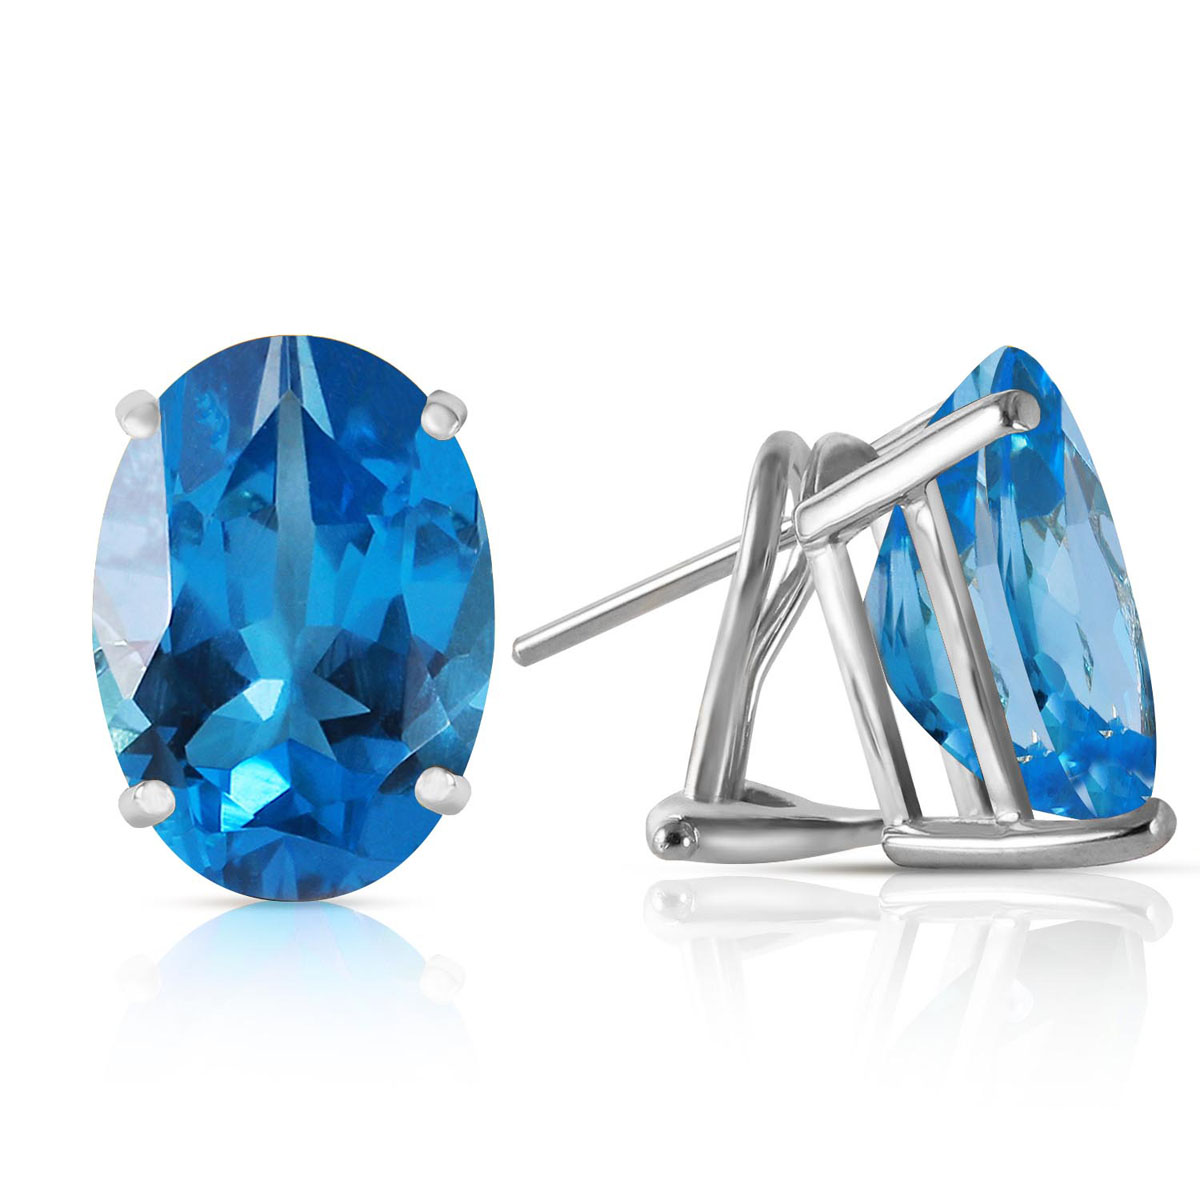 Blue Topaz Stud Earrings 16 ctw in 9ct White Gold